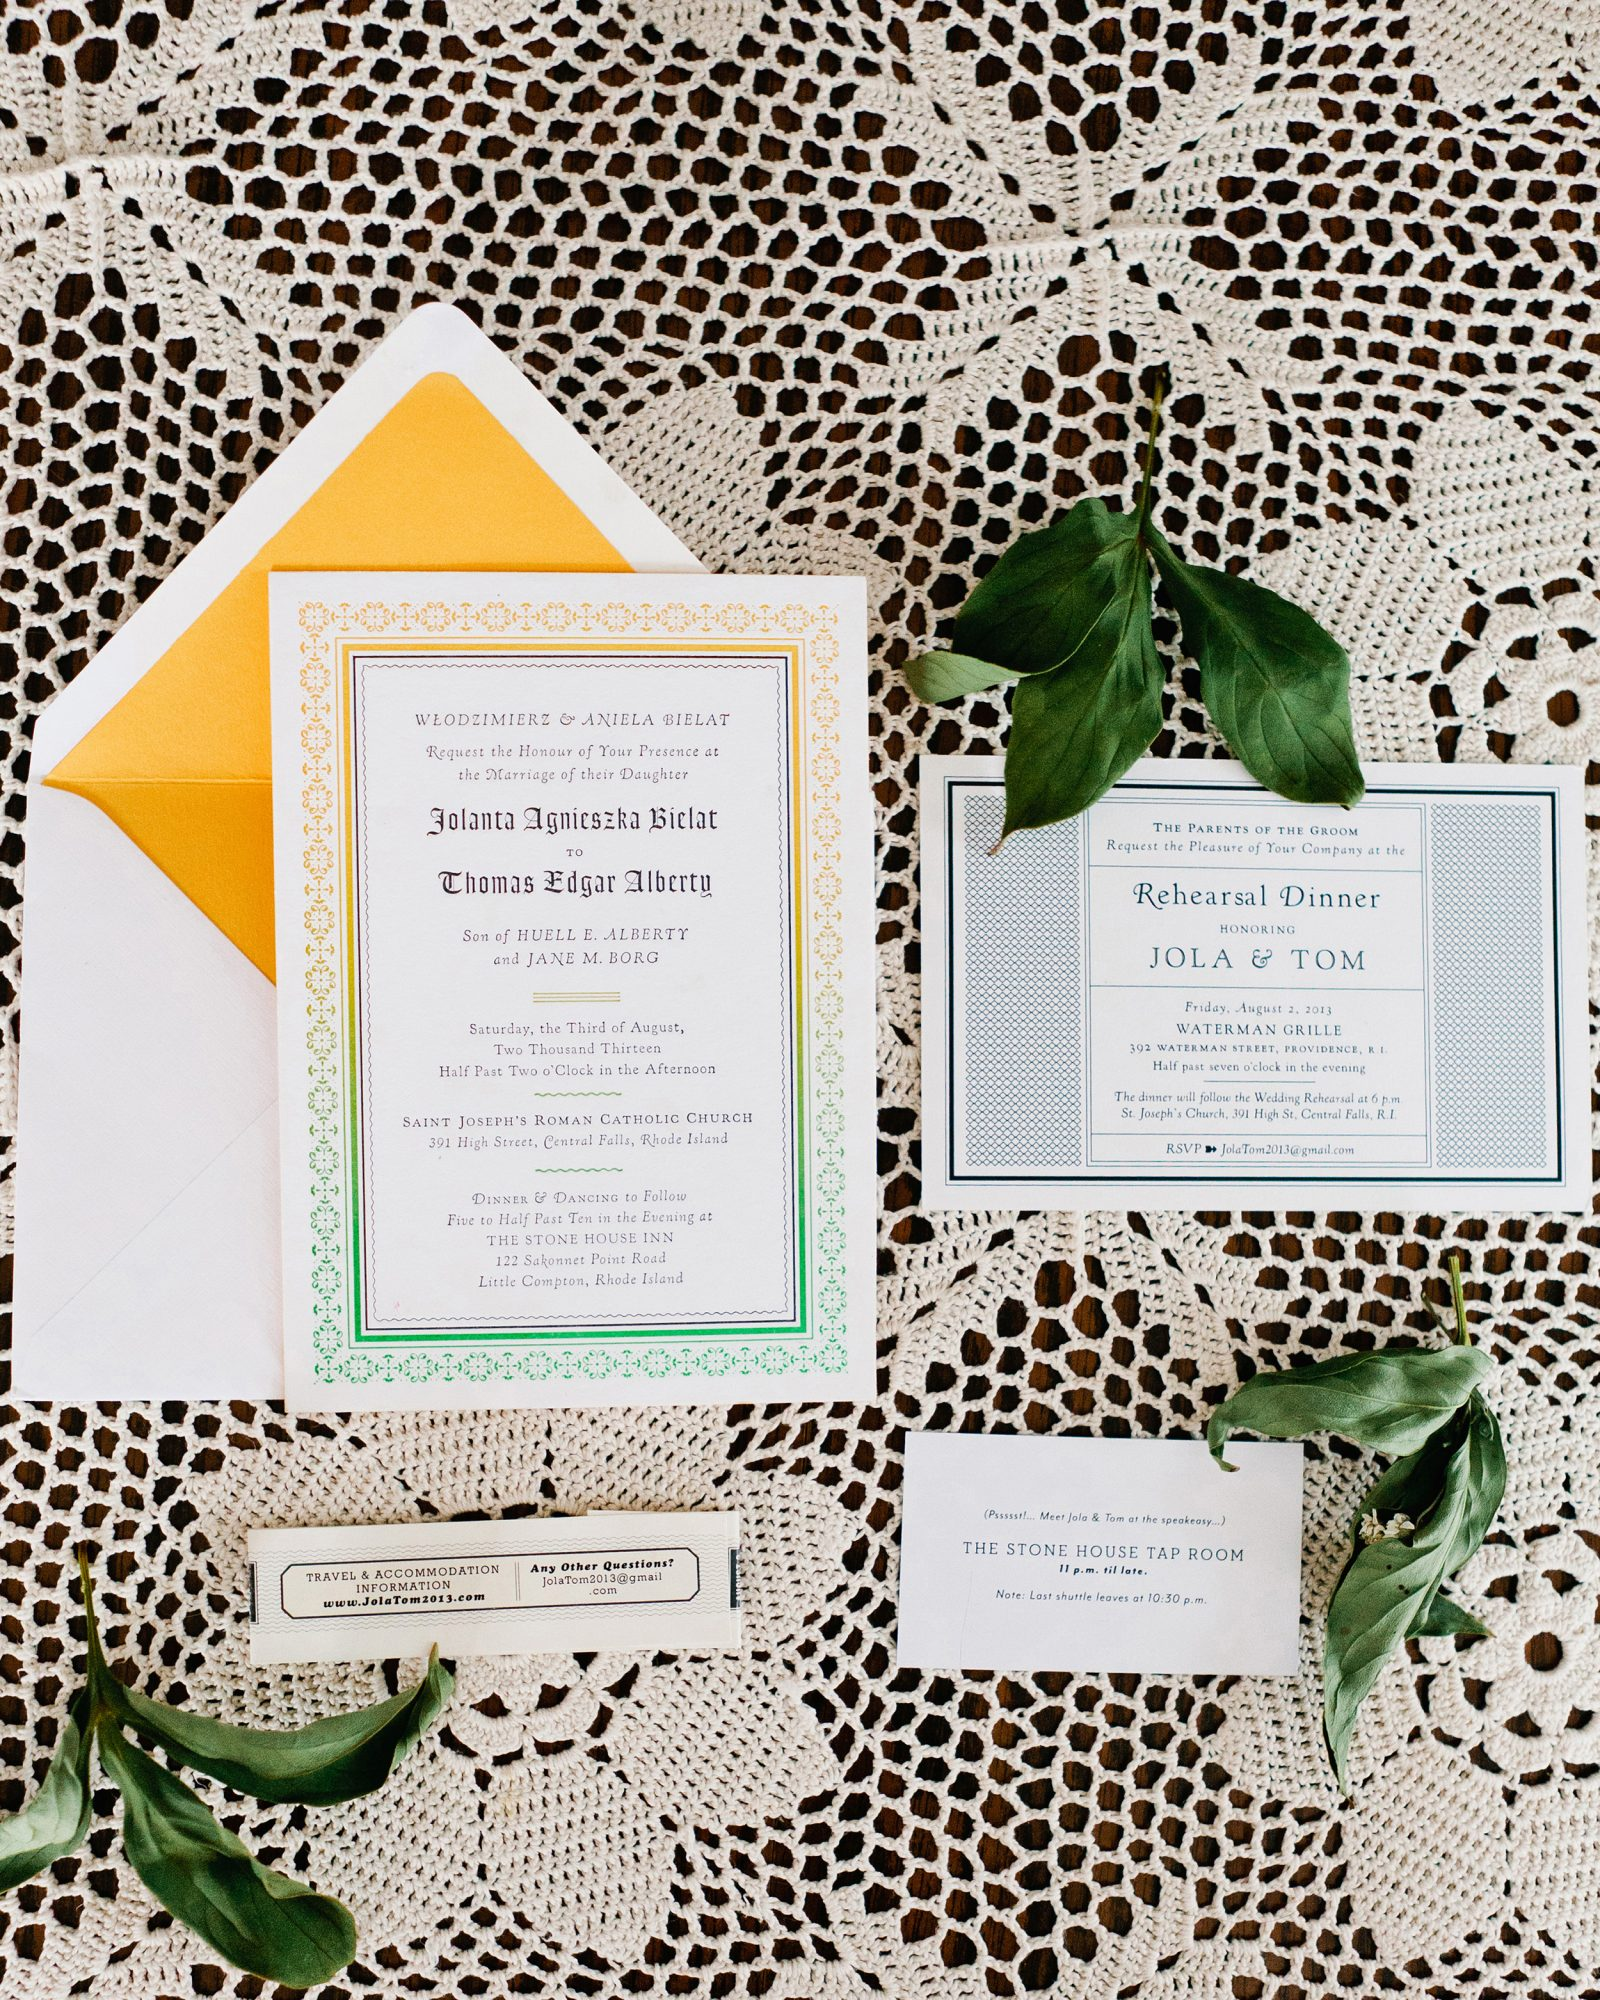 jola-tom-wedding-invite-0614.jpg